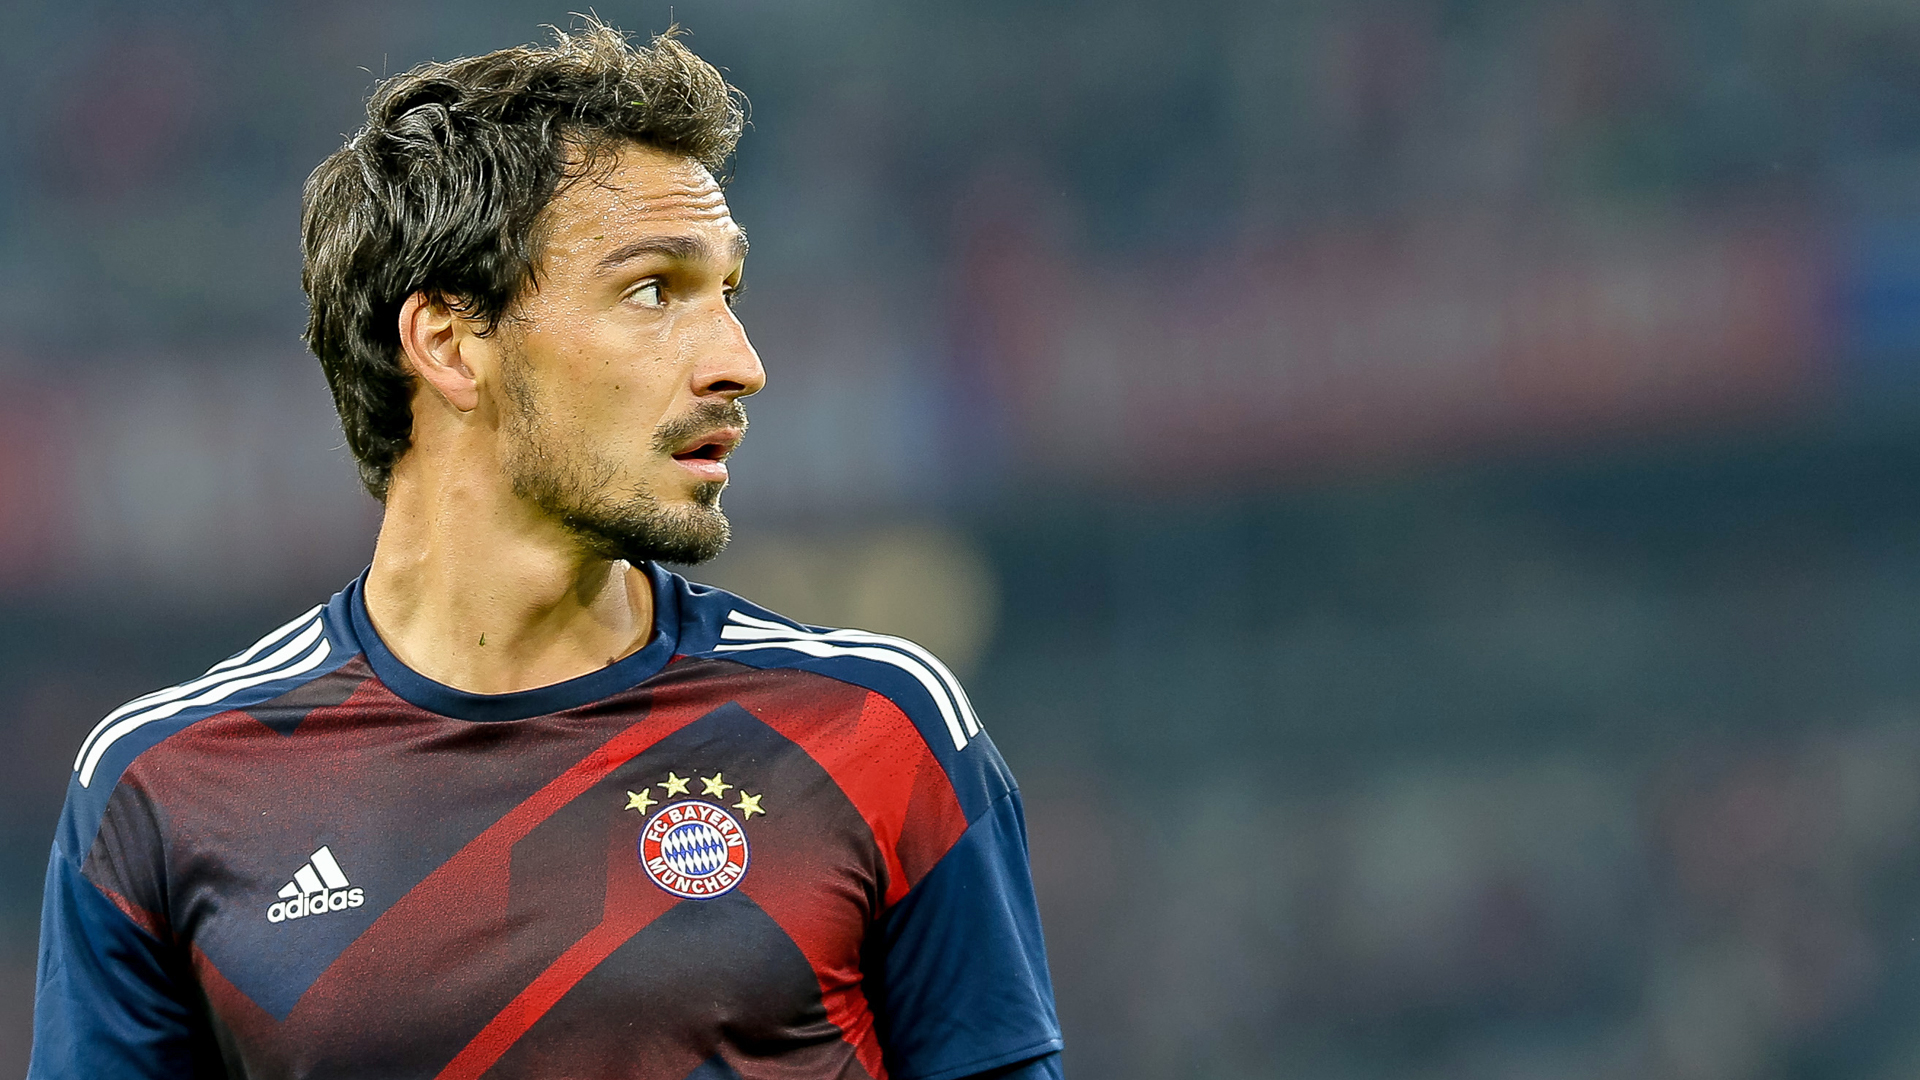 3d Live Wallpaper For Samsung Mobile Mats Hummels Wallpaper